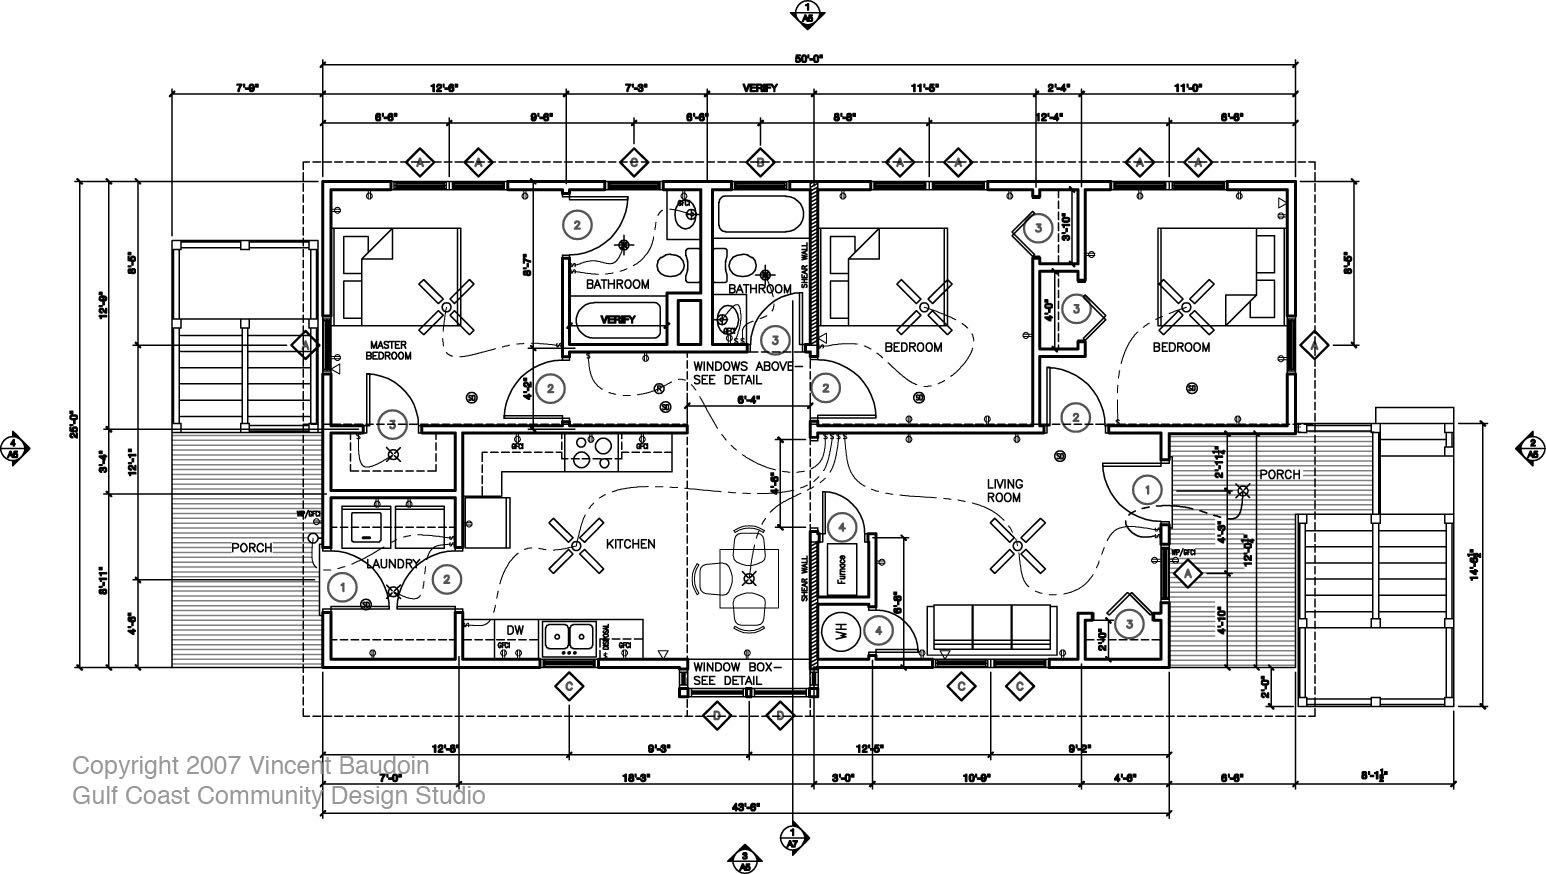 residential home building plans posted by admin under house plans